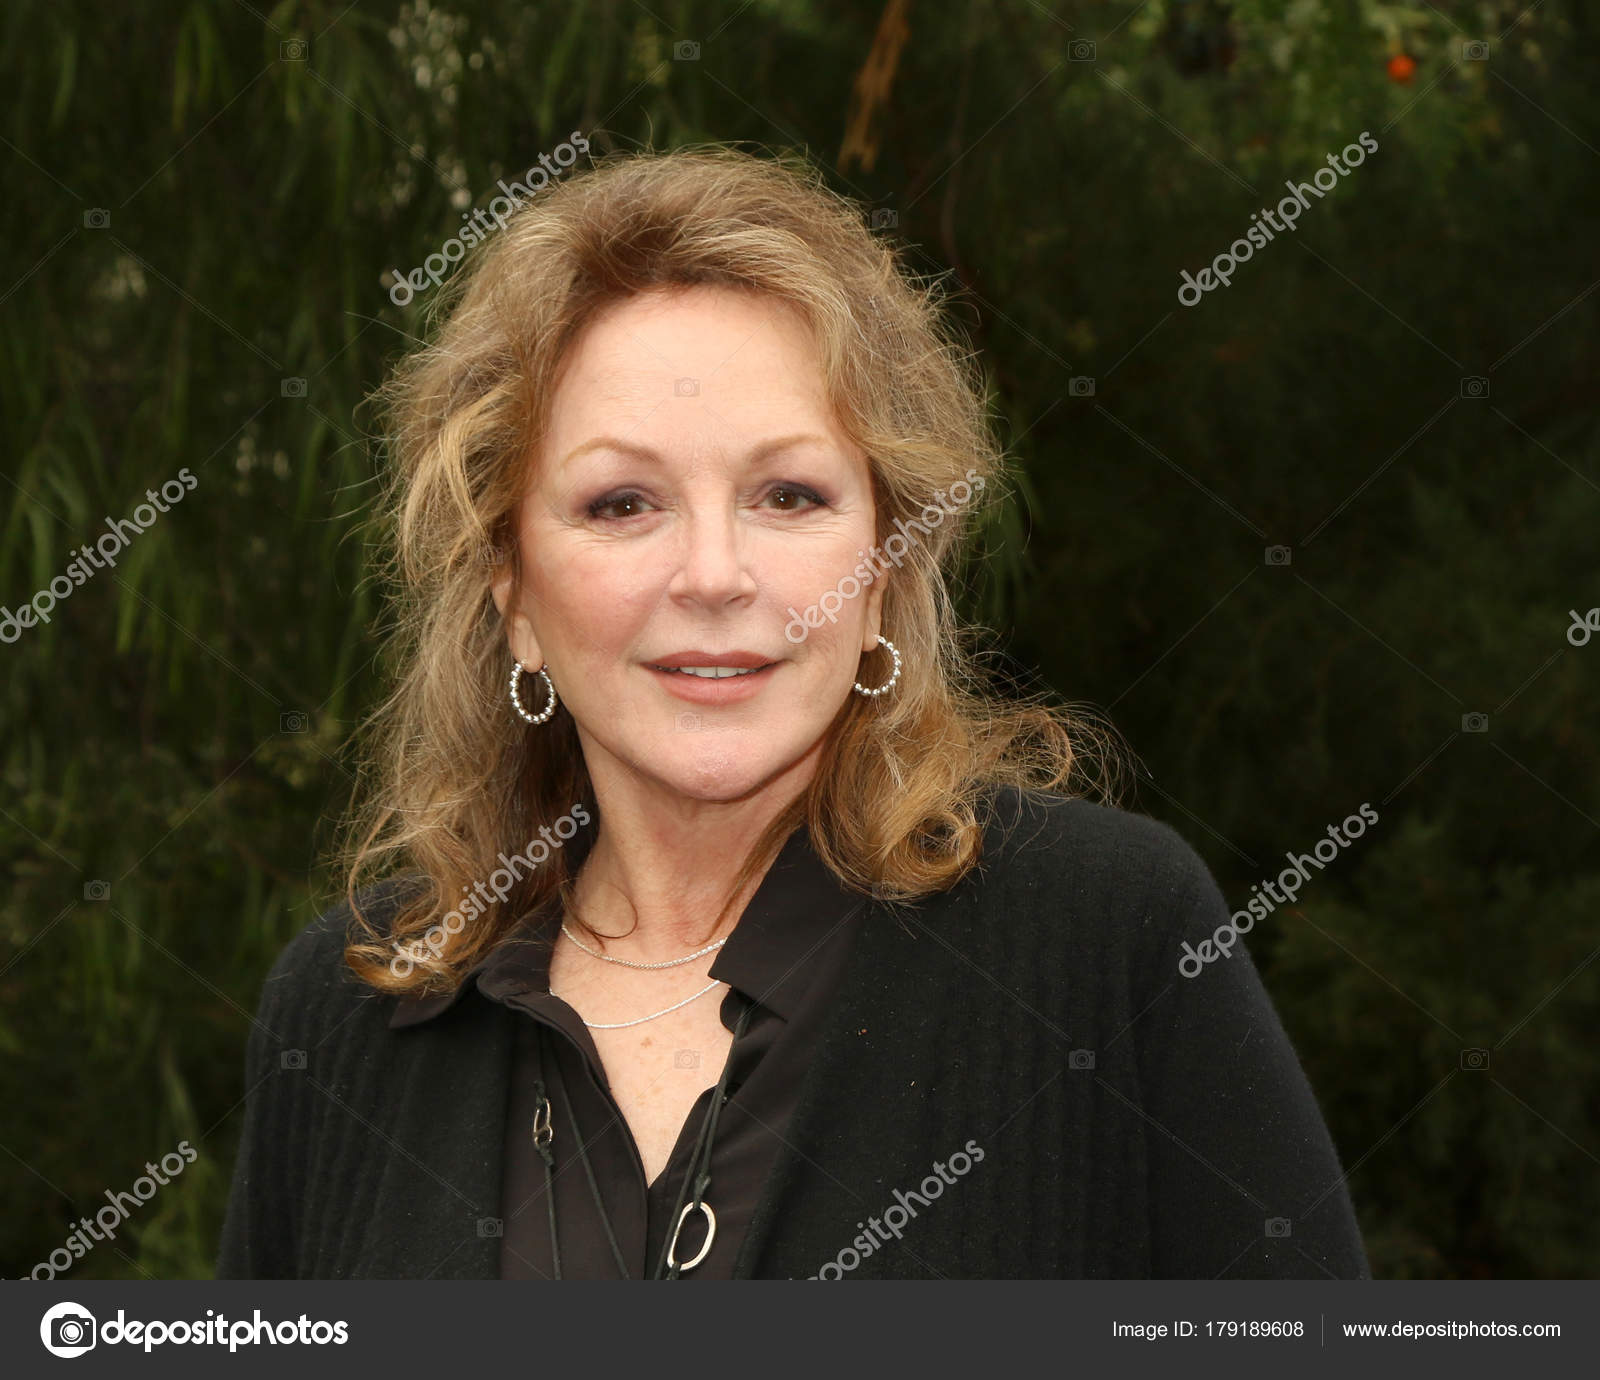 Bonnie Bedelia Nude Photos 30